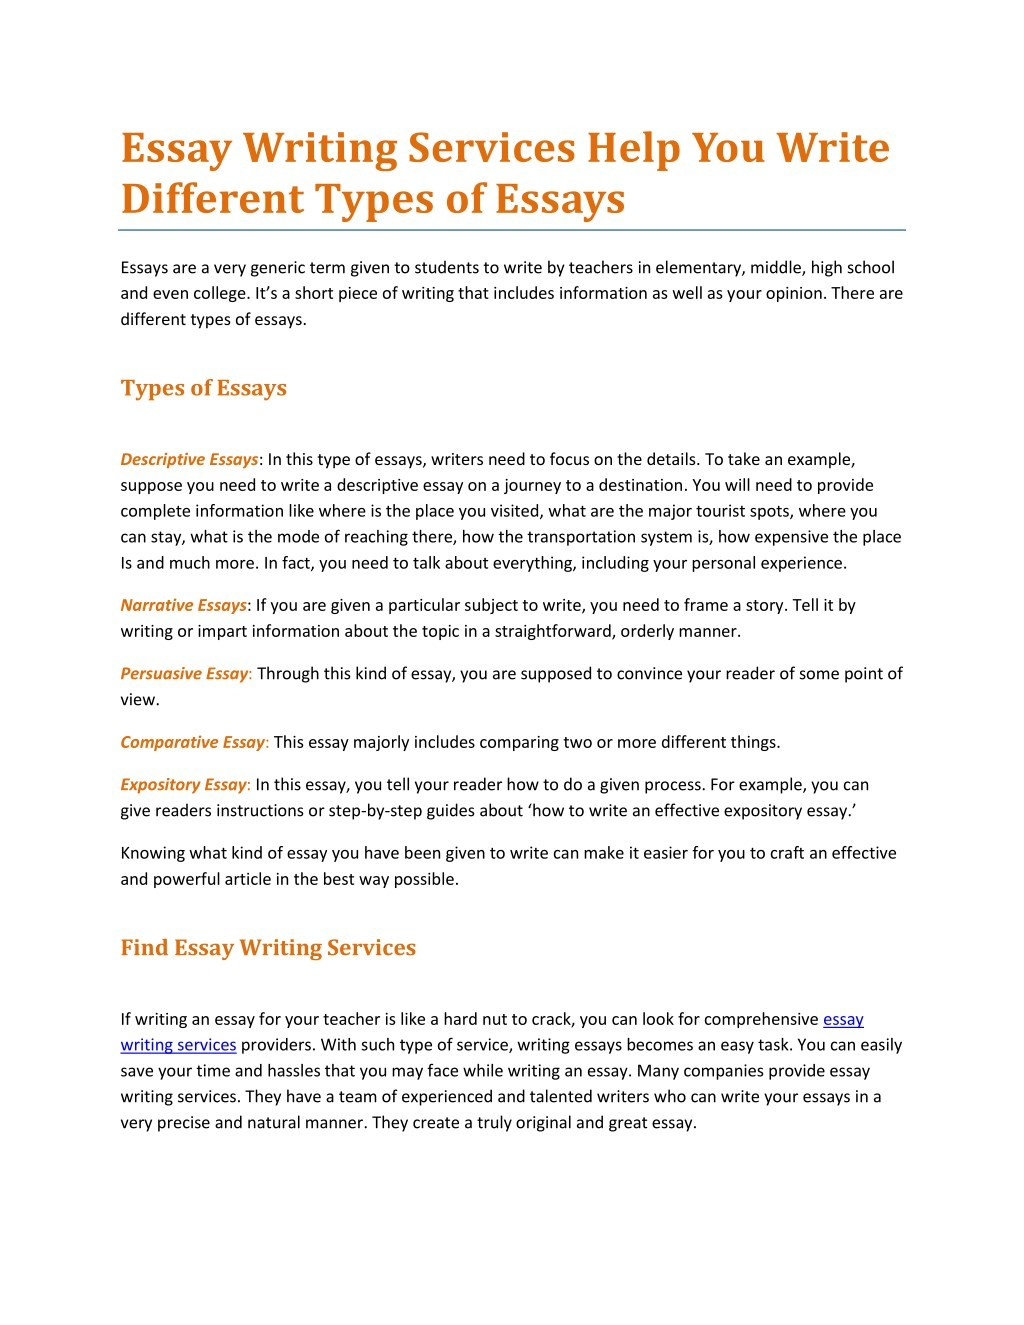 Compare and contrast essay between two countries